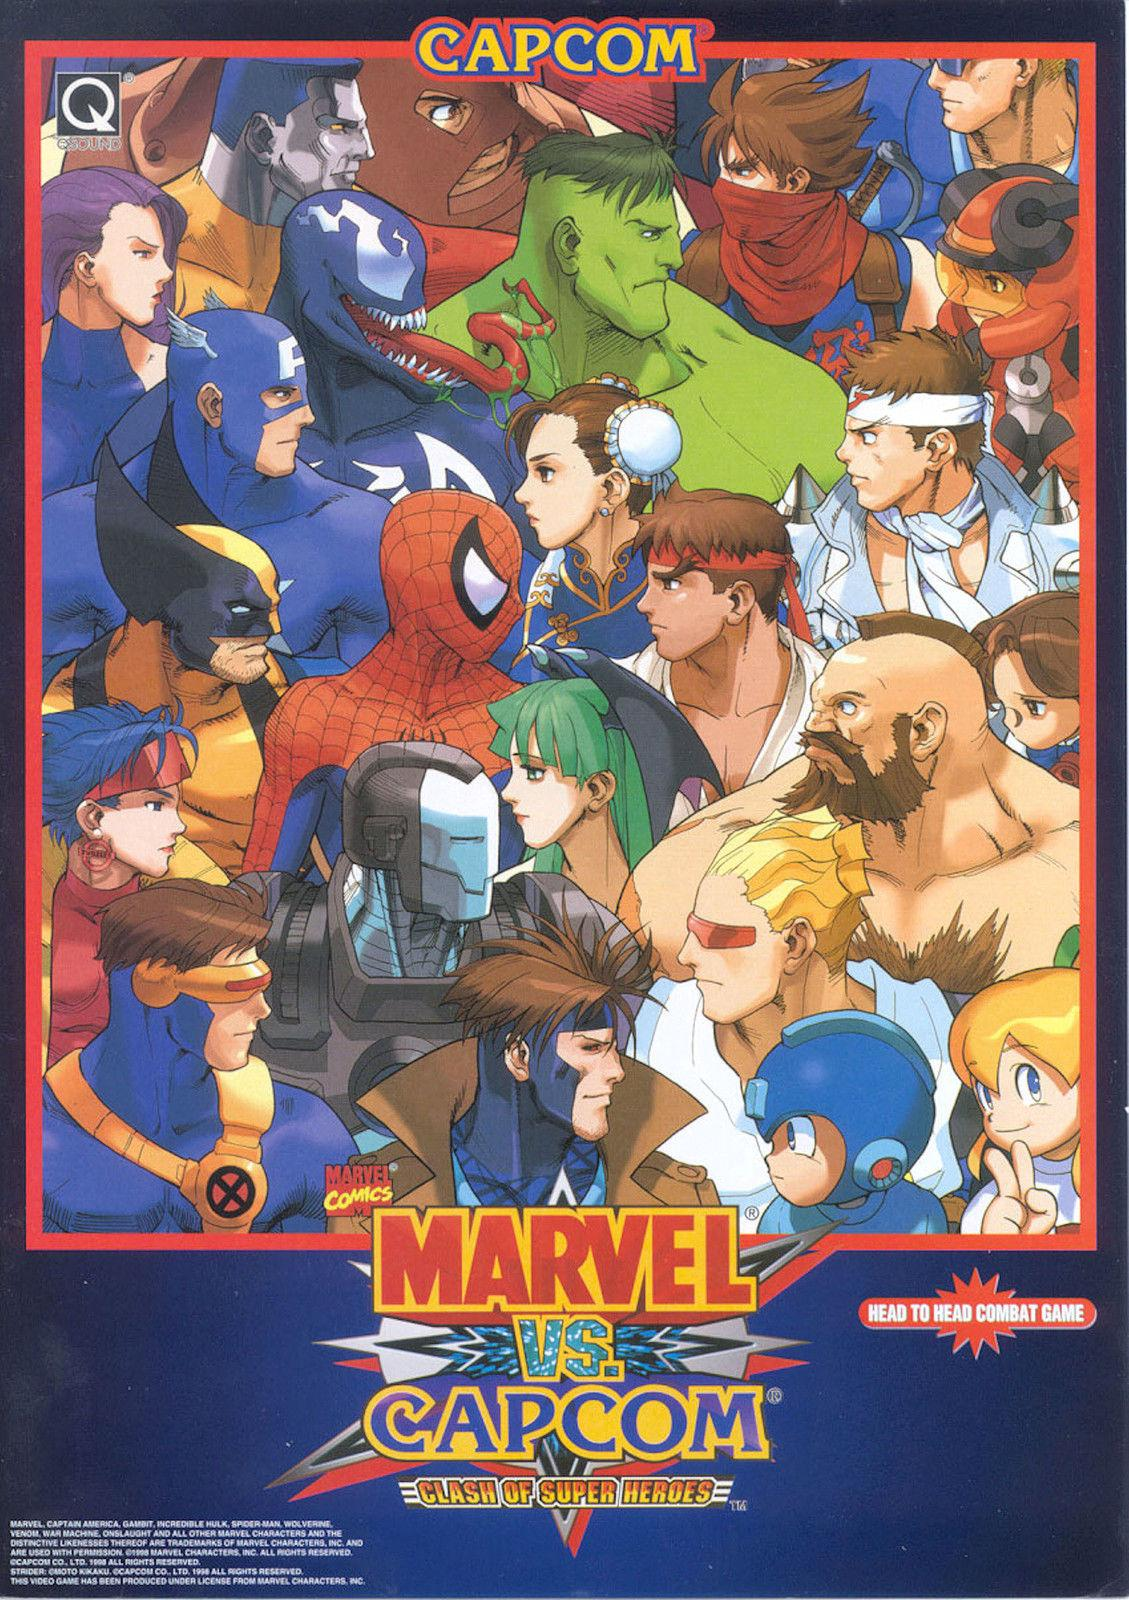 MARVEL VS CAPCOM Video Game Promo Art Silk Poster 24x36inch 24x43inch 12